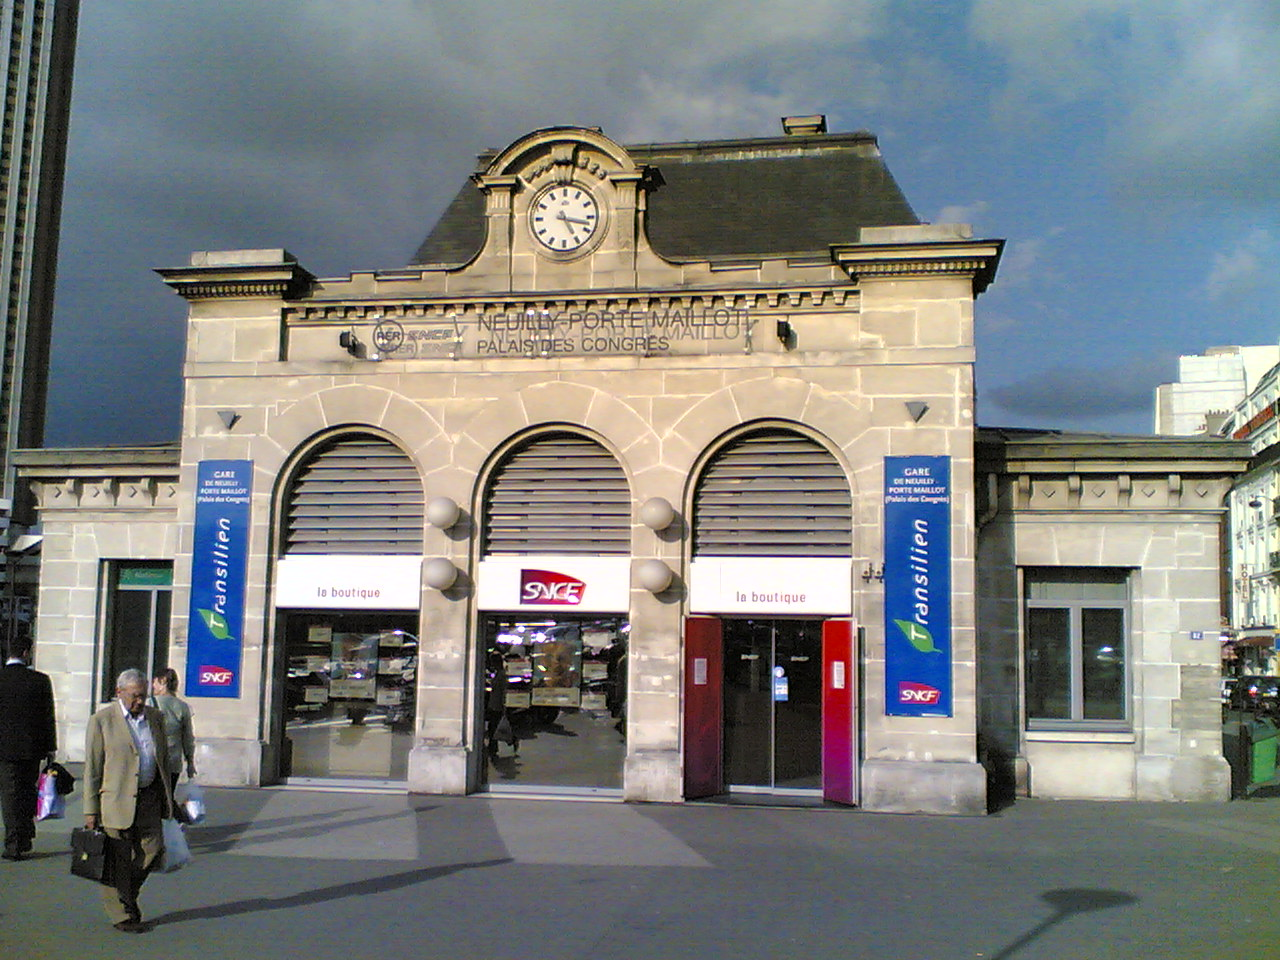 Gare de neuilly porte maillot for Porte maillot in paris